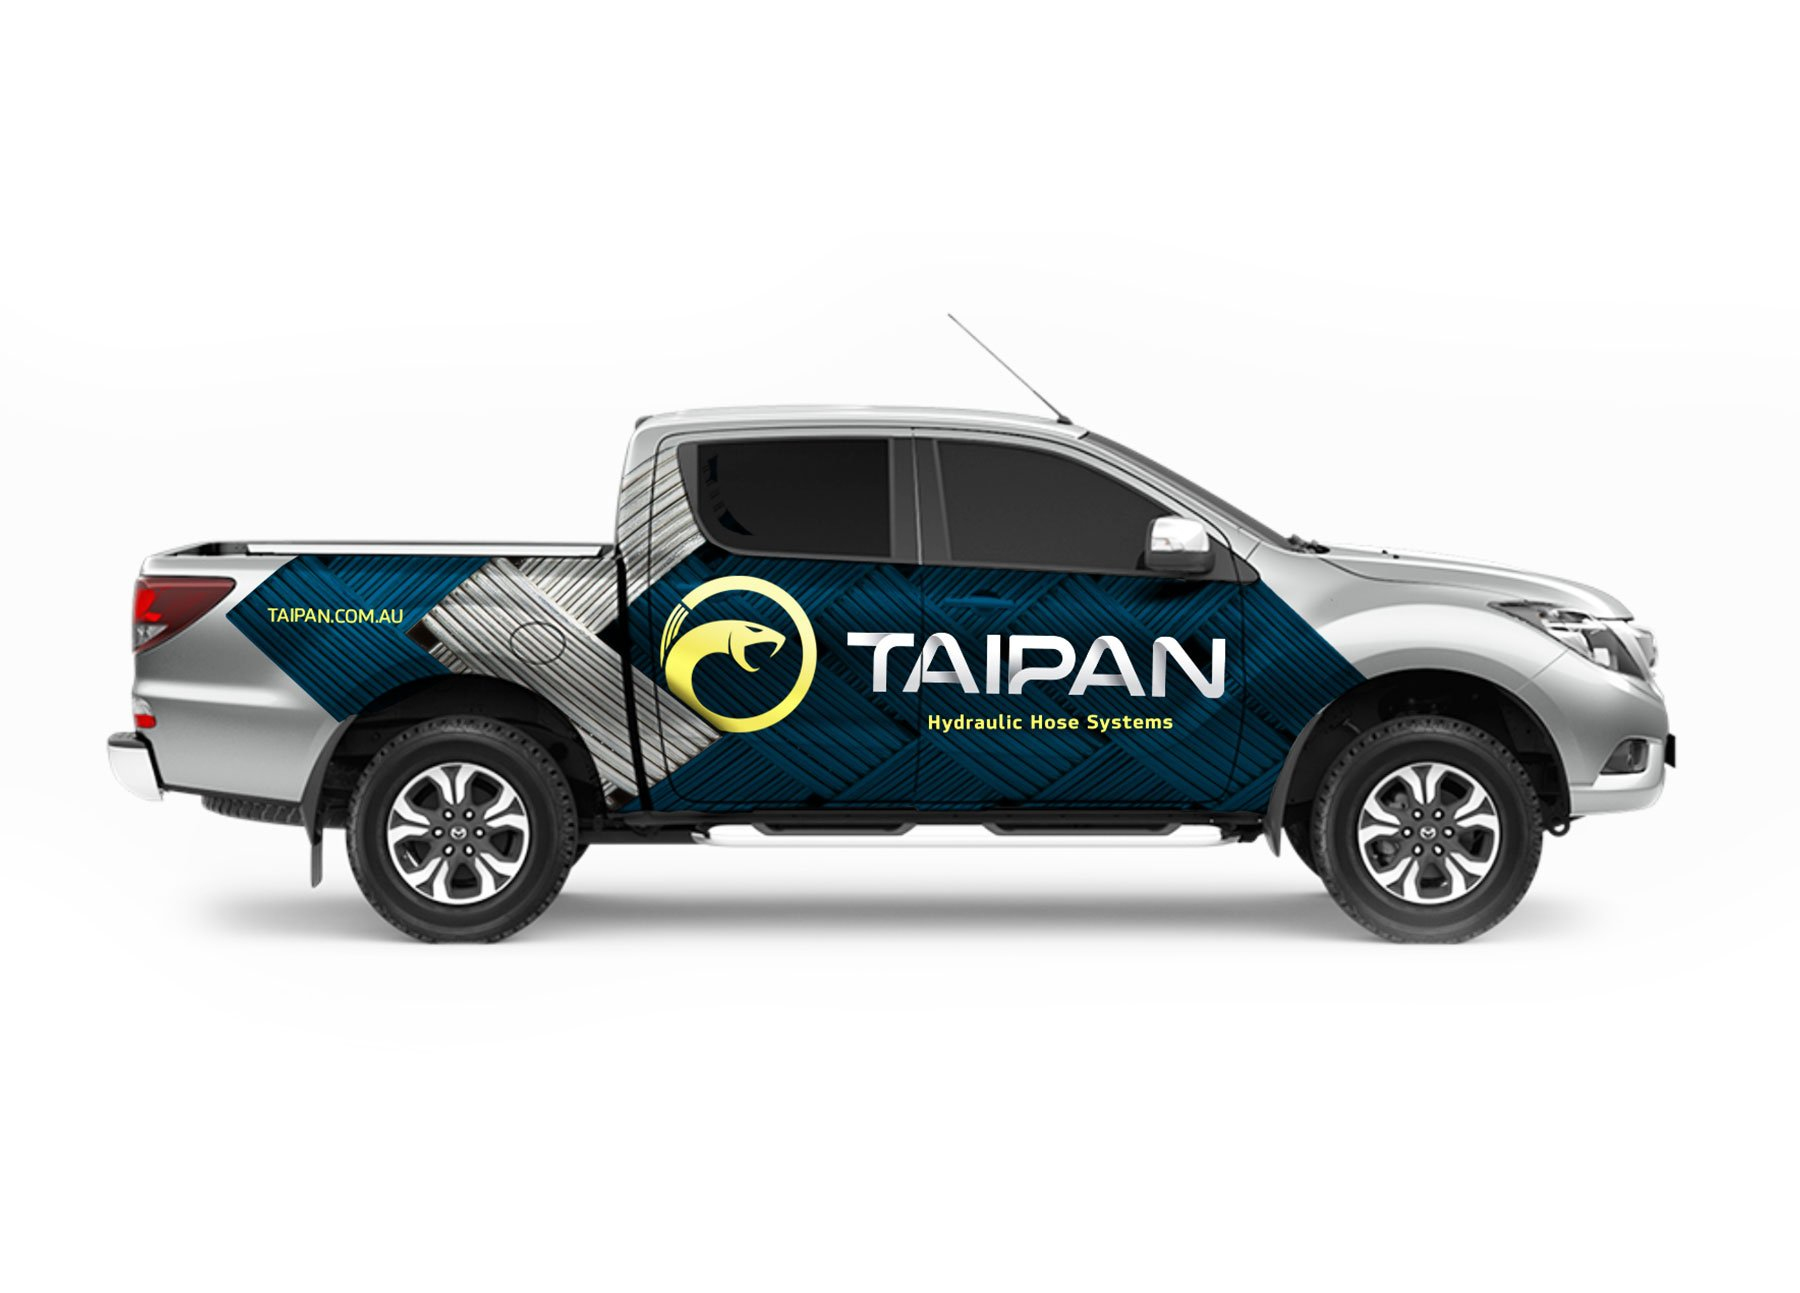 led-by-design-taipan-portfolio3